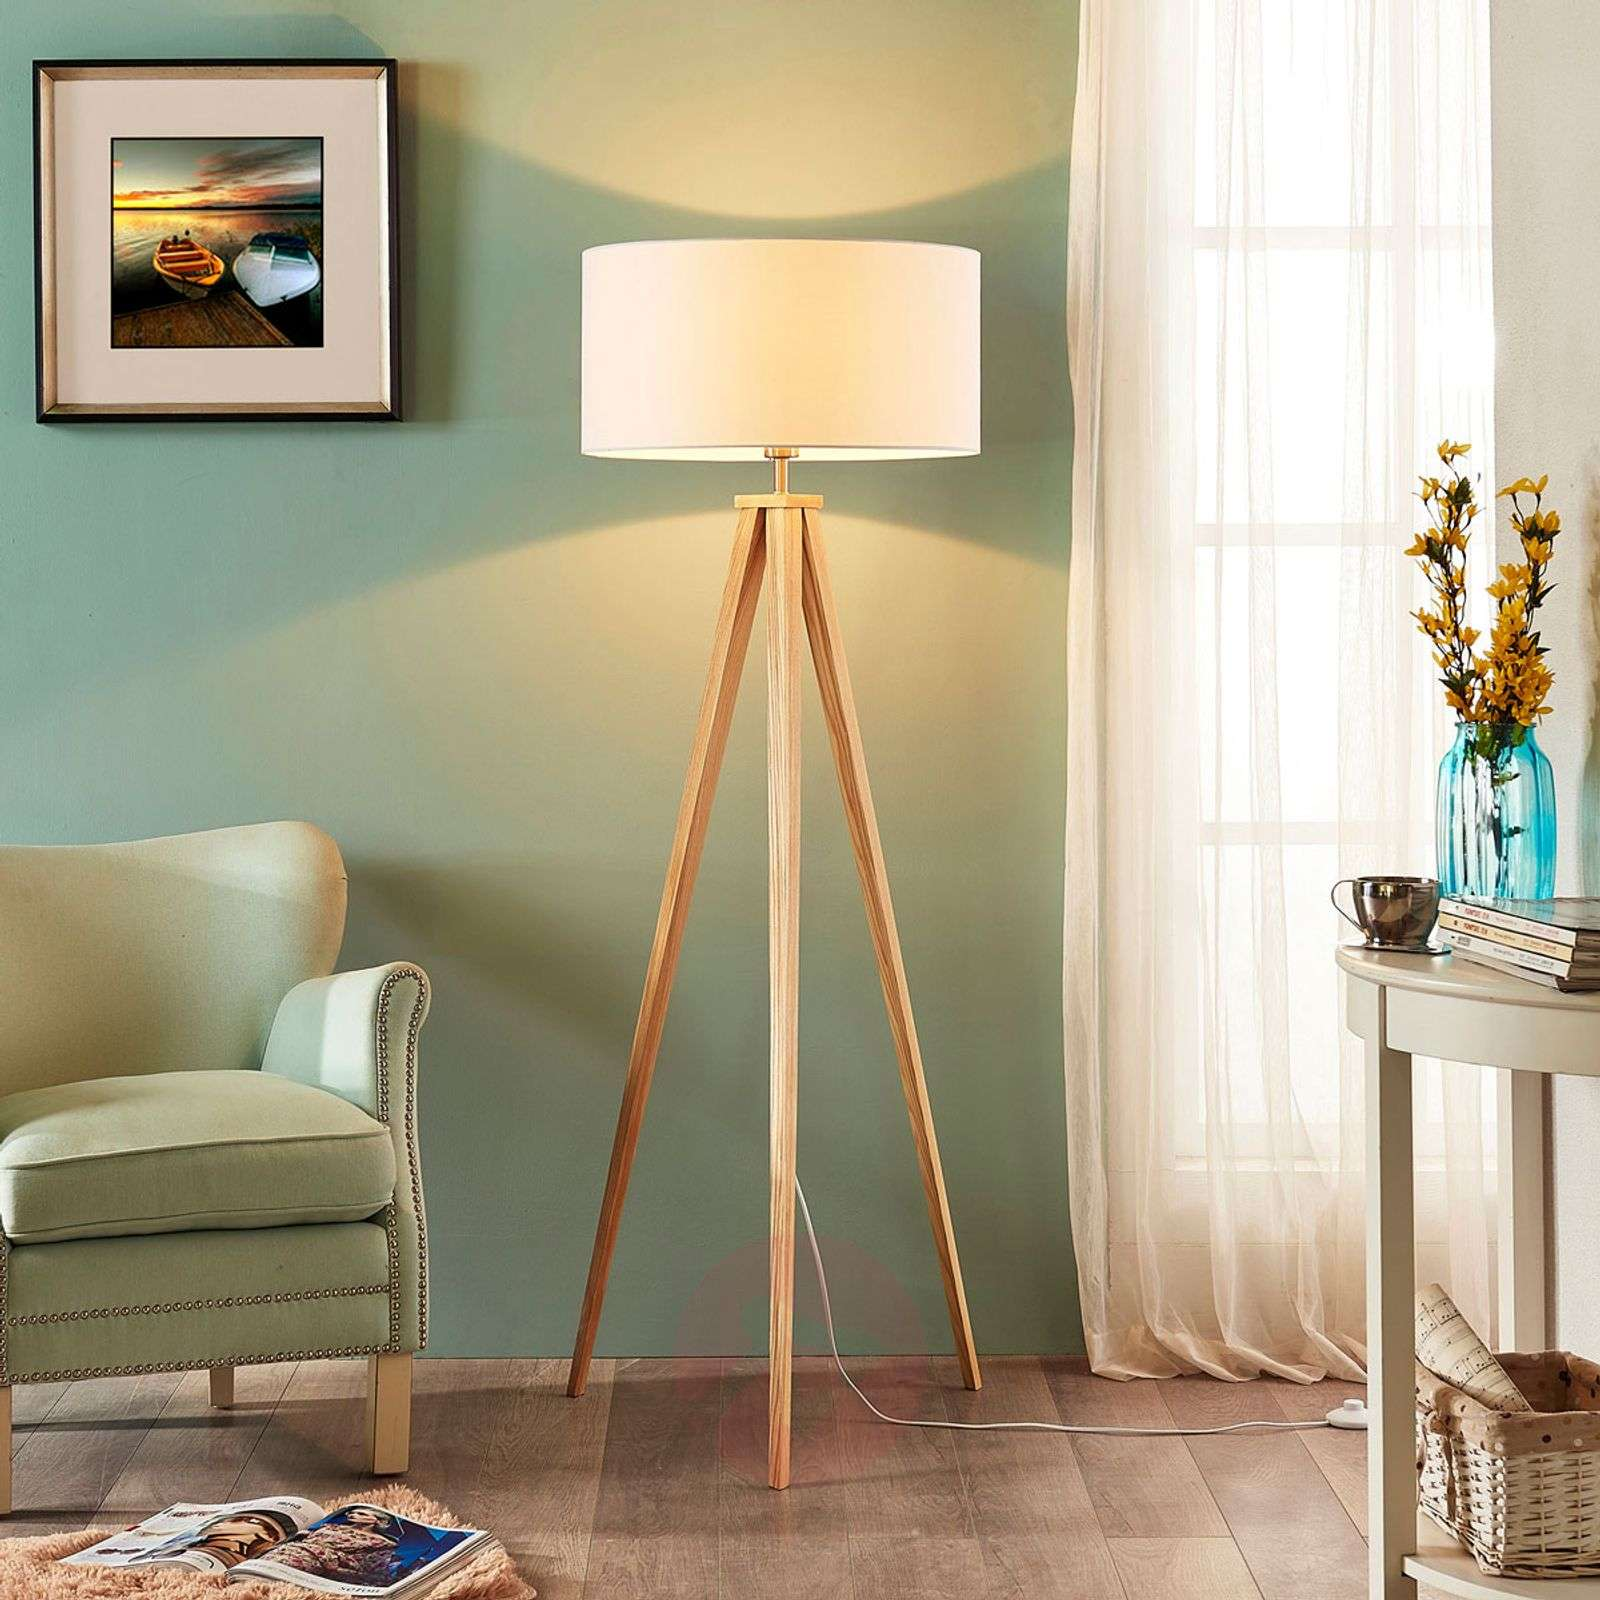 Tripod wooden floor lamp Mya with wooden lampshade-9621329-01